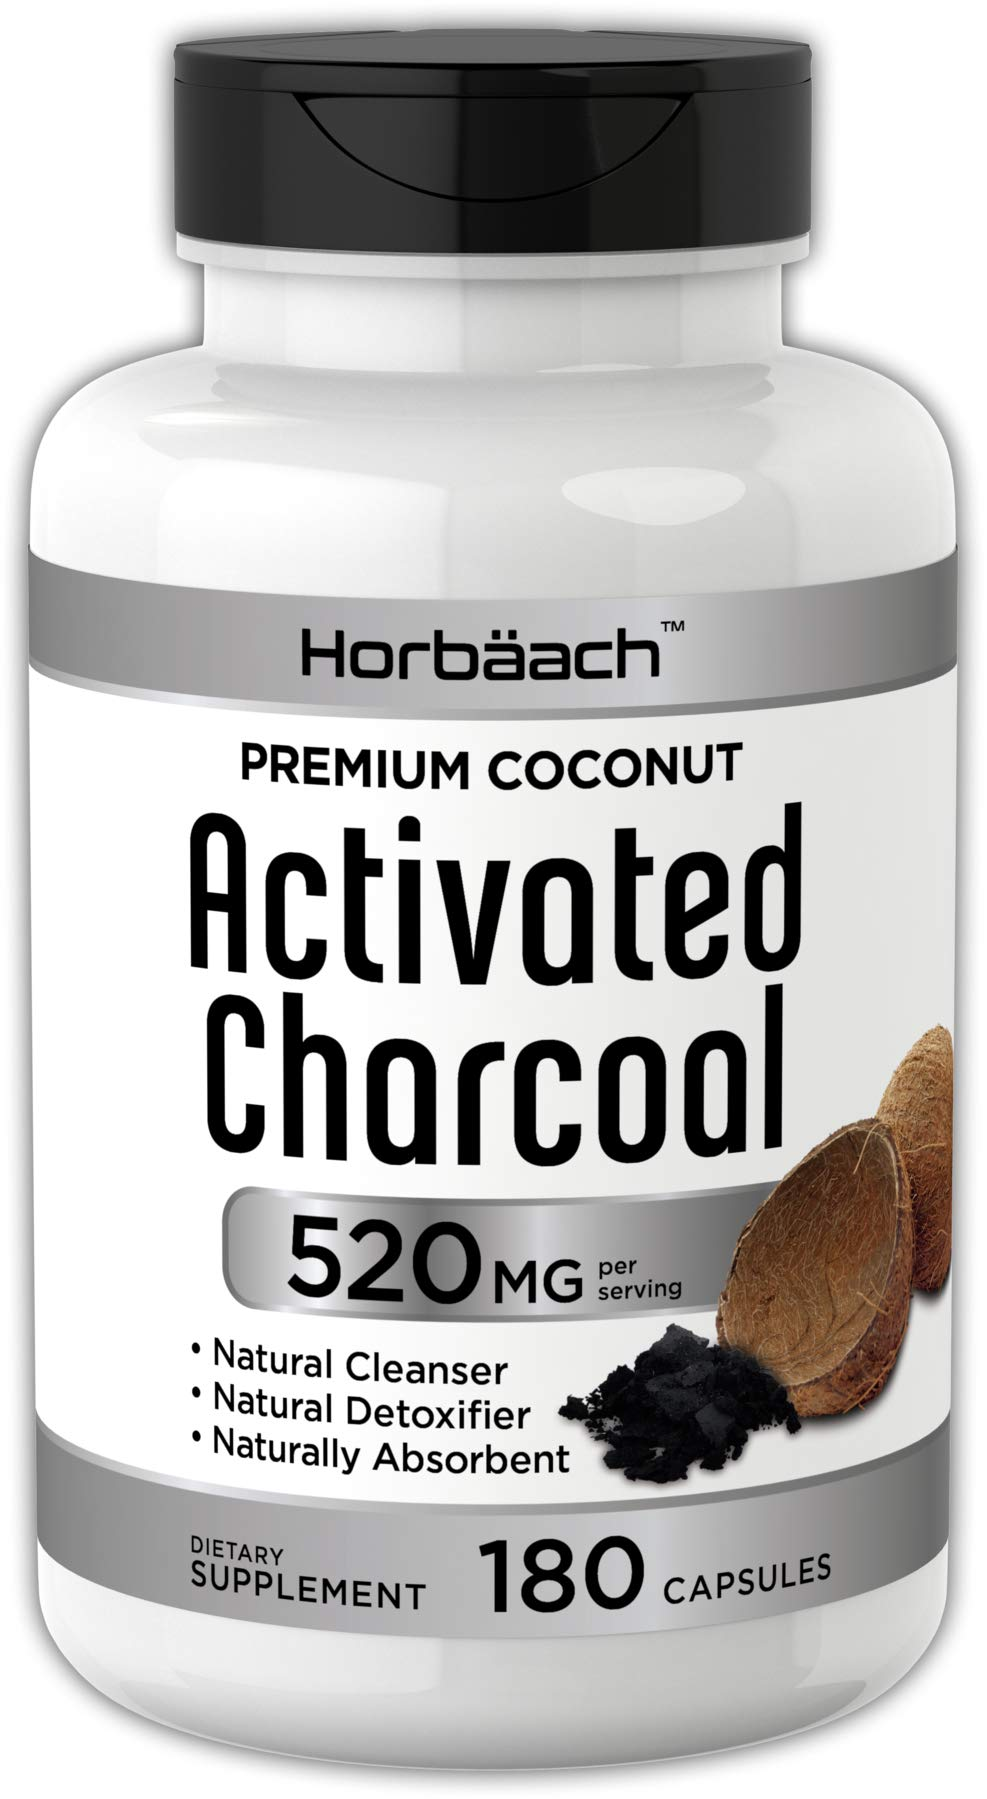 Horbaach Activated Charcoal 180 Capsules   from Coconut Shells   Non-GMO and Gluten Free Pills   Helps Bloating and Digestion